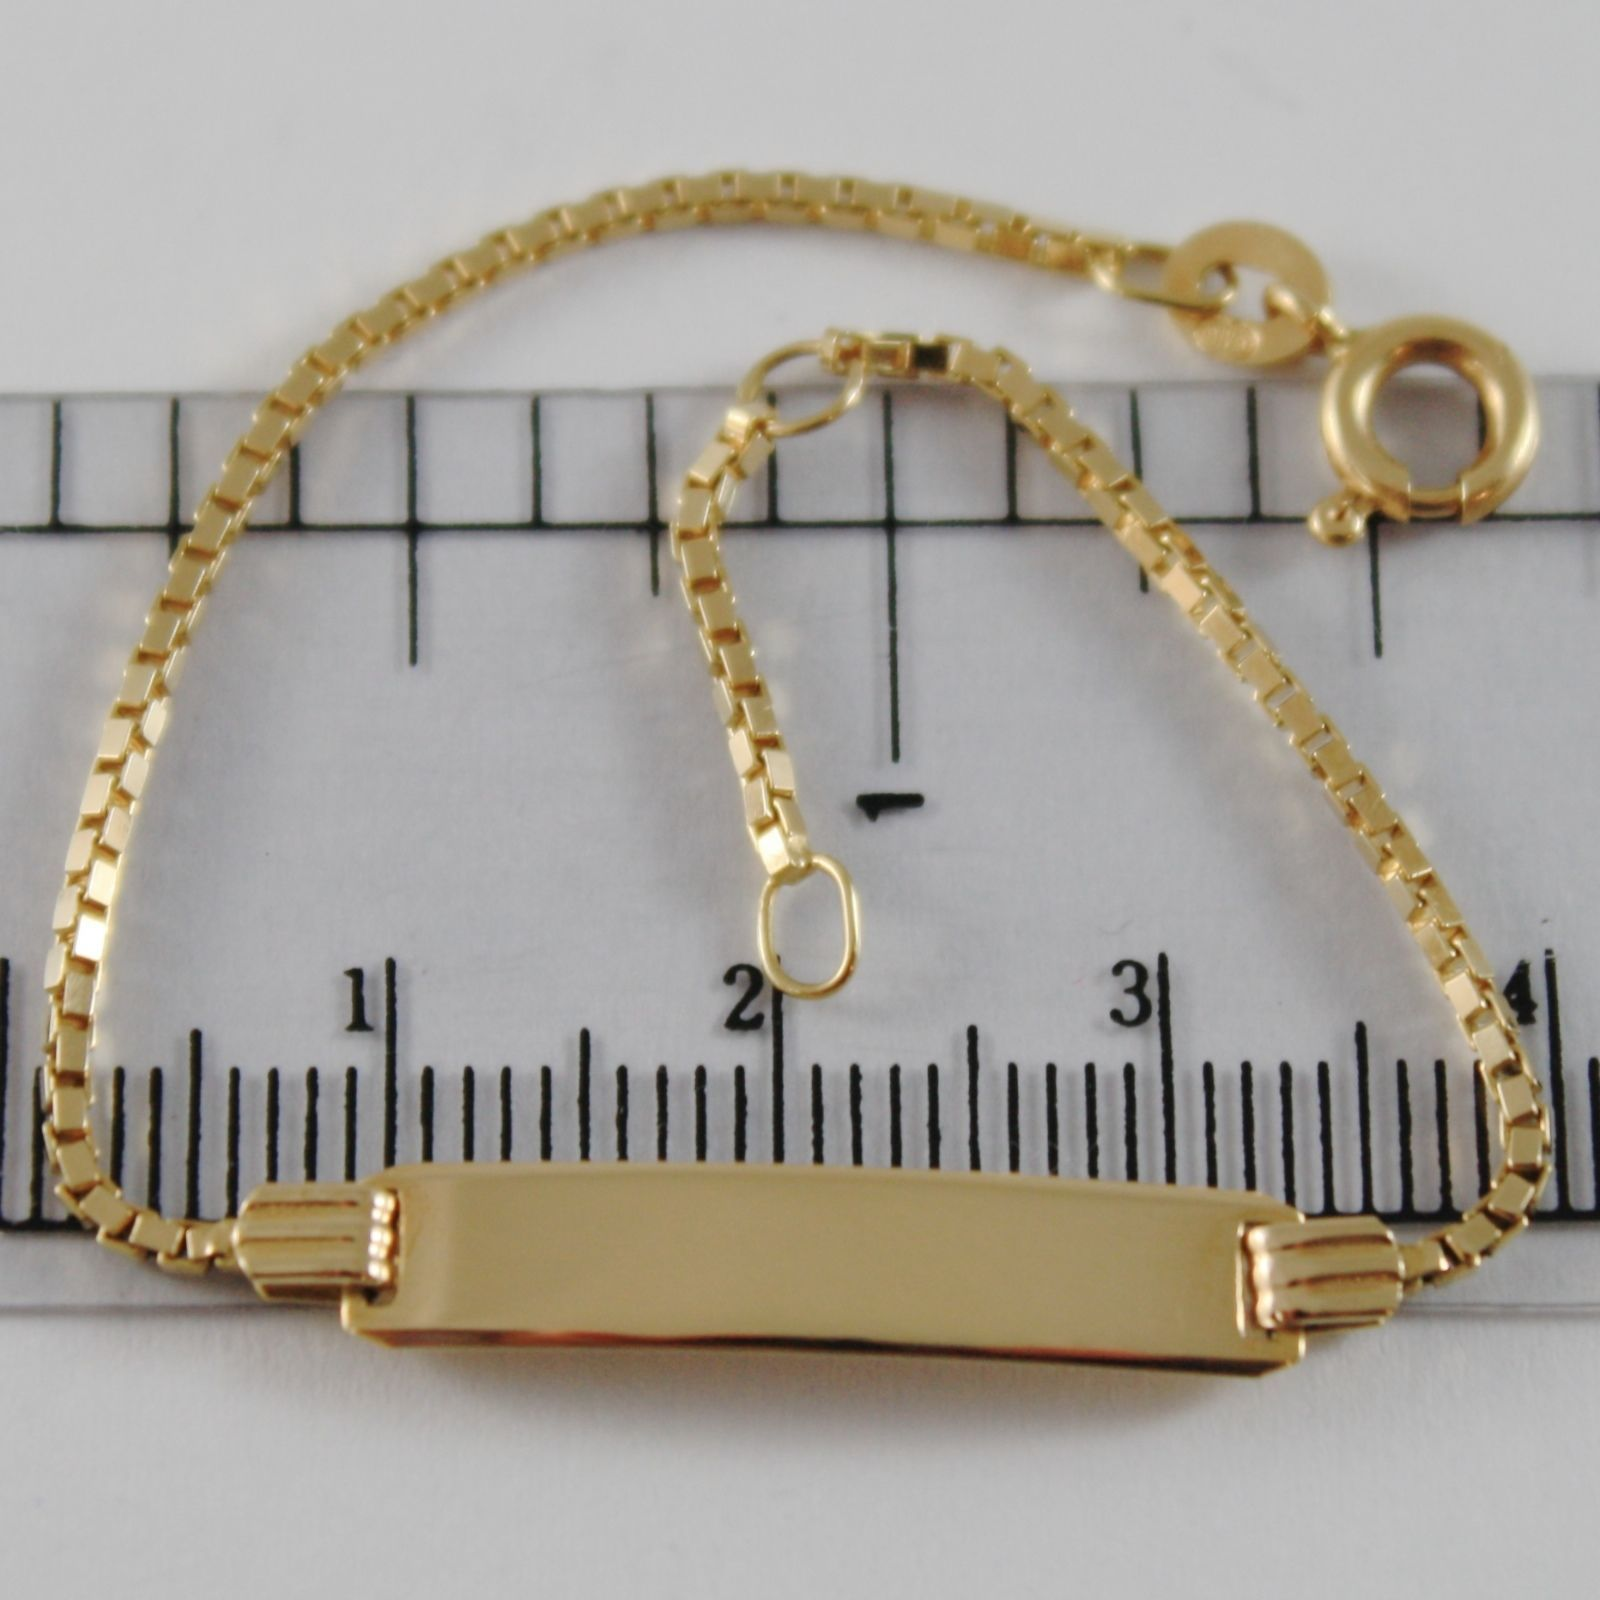 18K YELLOW GOLD KIDS BRACELET 5.90 ENGRAVING PLATE, VENETIAN MESH MADE IN ITALY